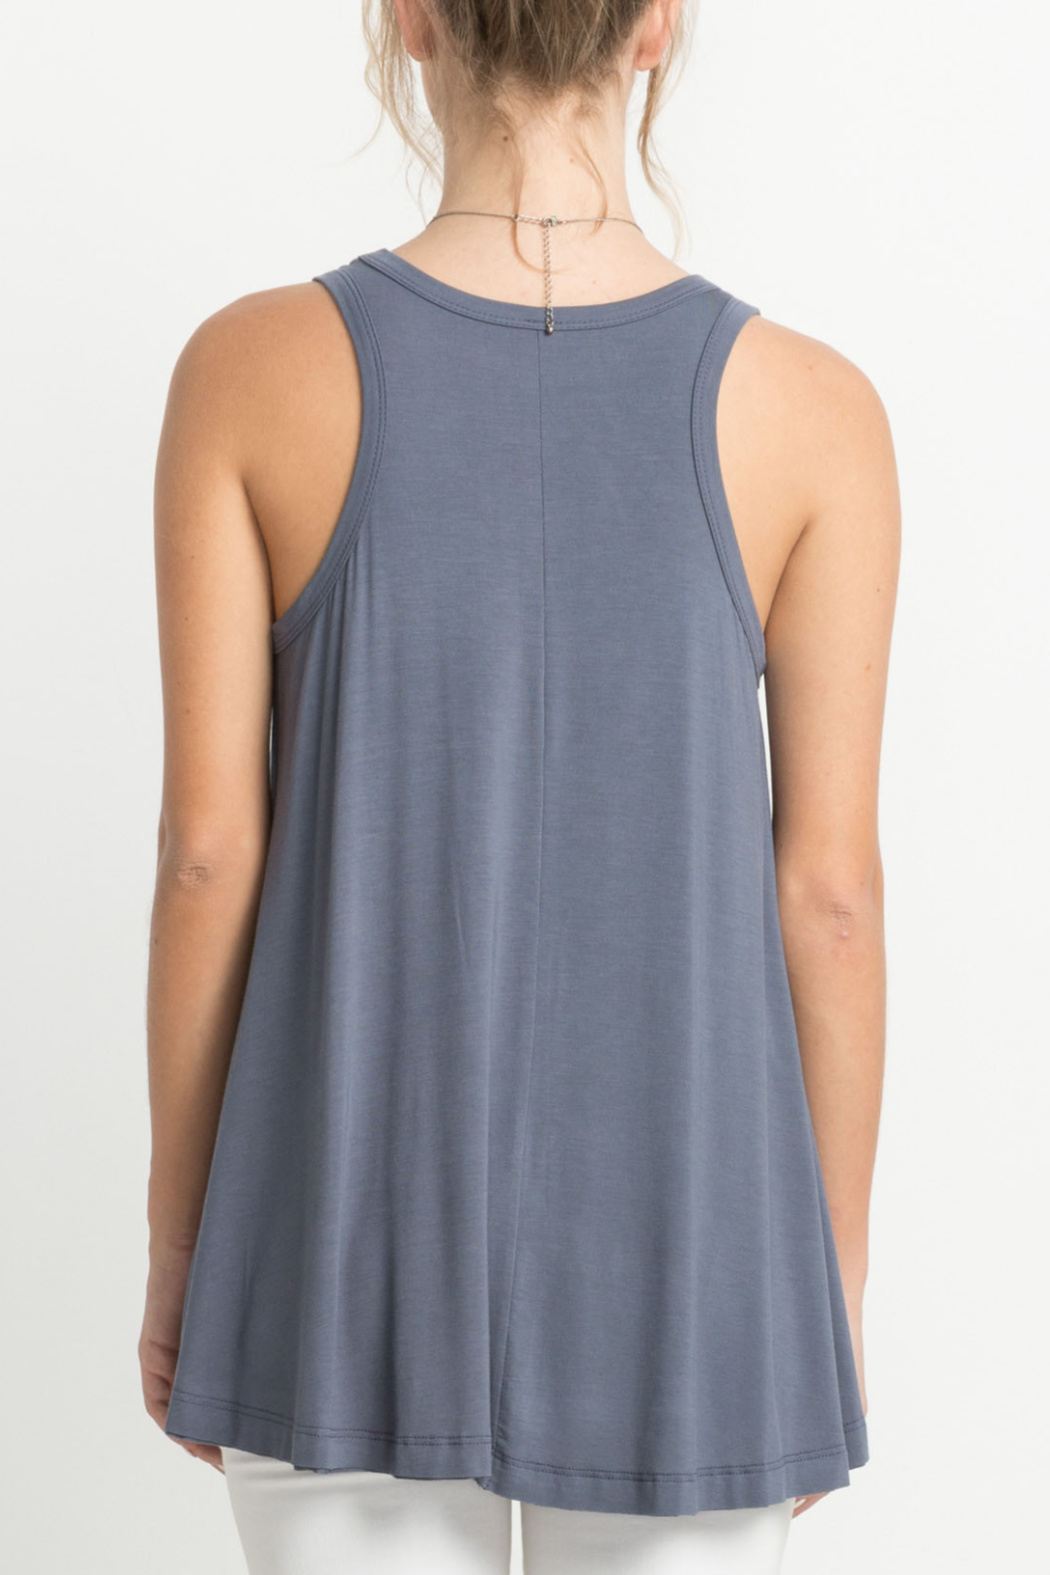 Mittoshop Bamboo fabric tank top - Front Cropped Image